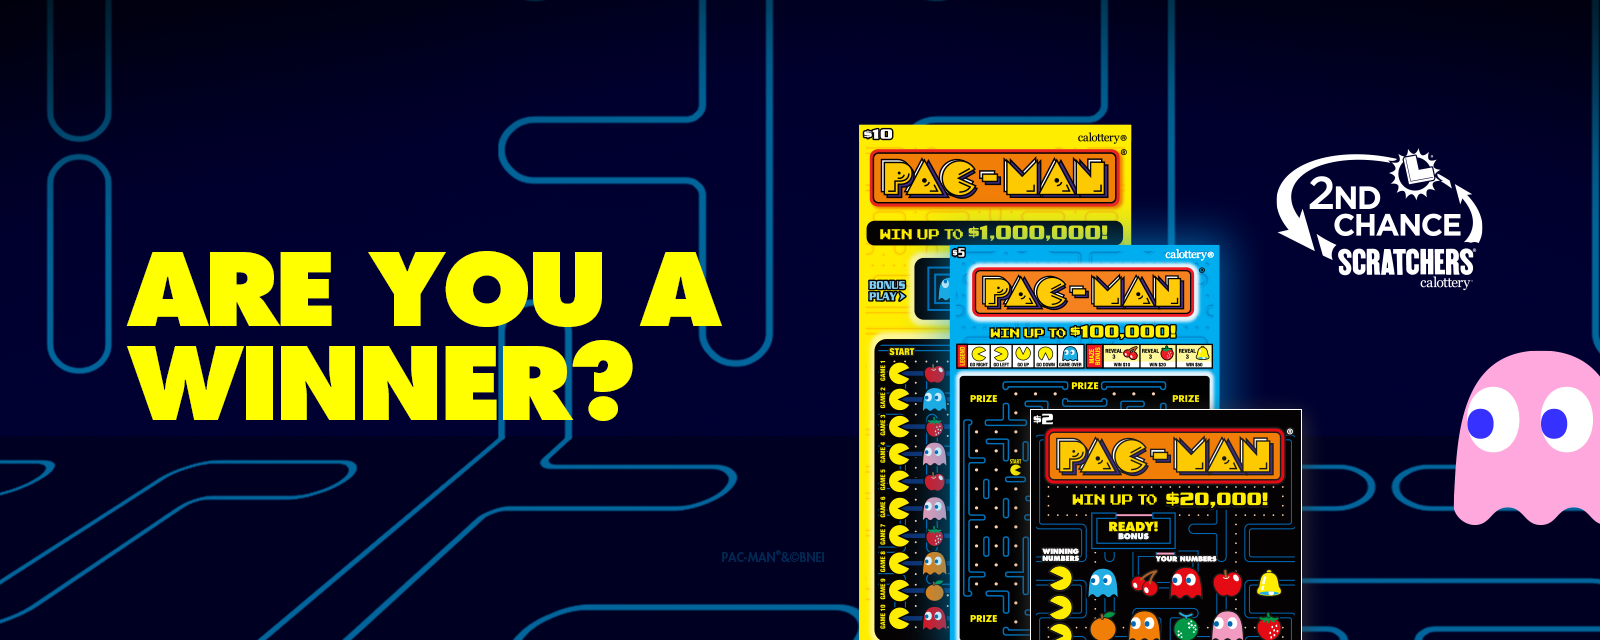 PAC-MAN Scratchers 2nd Chance Promo Ended